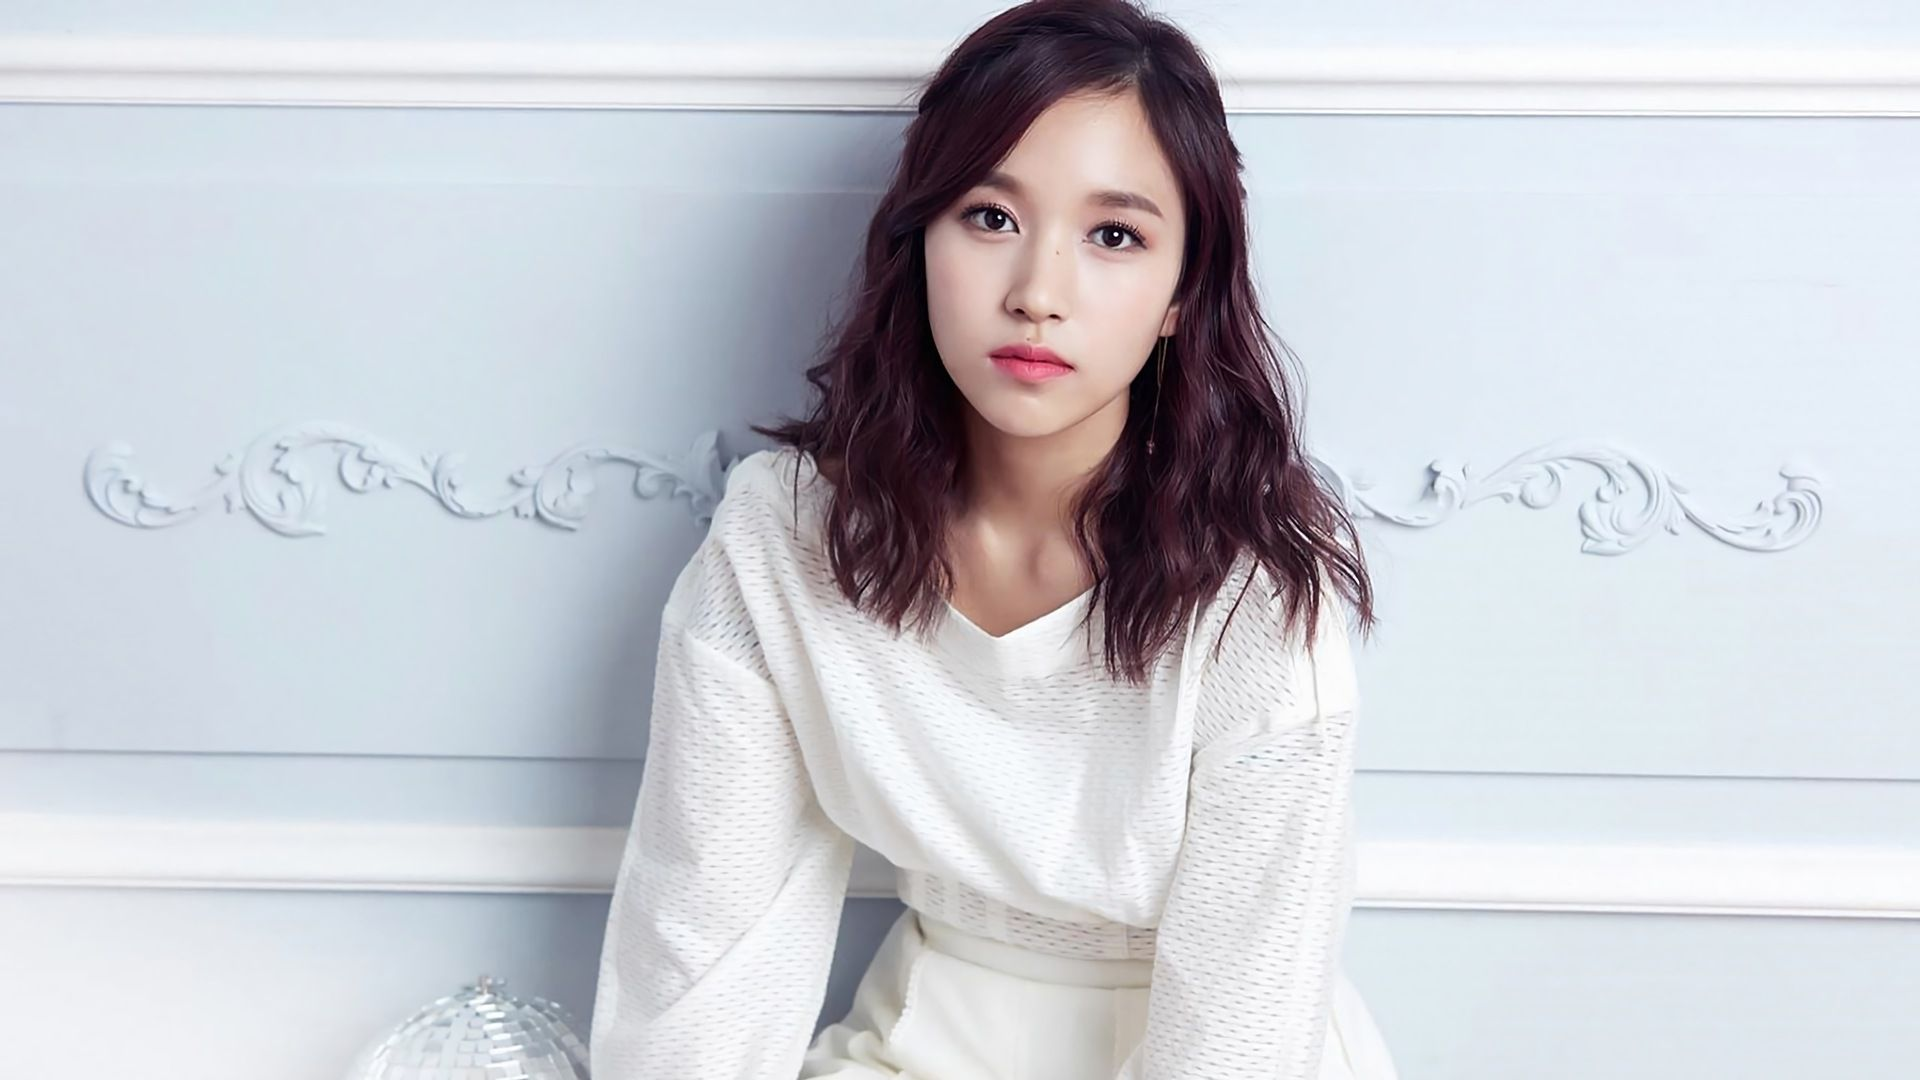 Mina Twice K-Pop Japanese Girl Wallpaper #18021